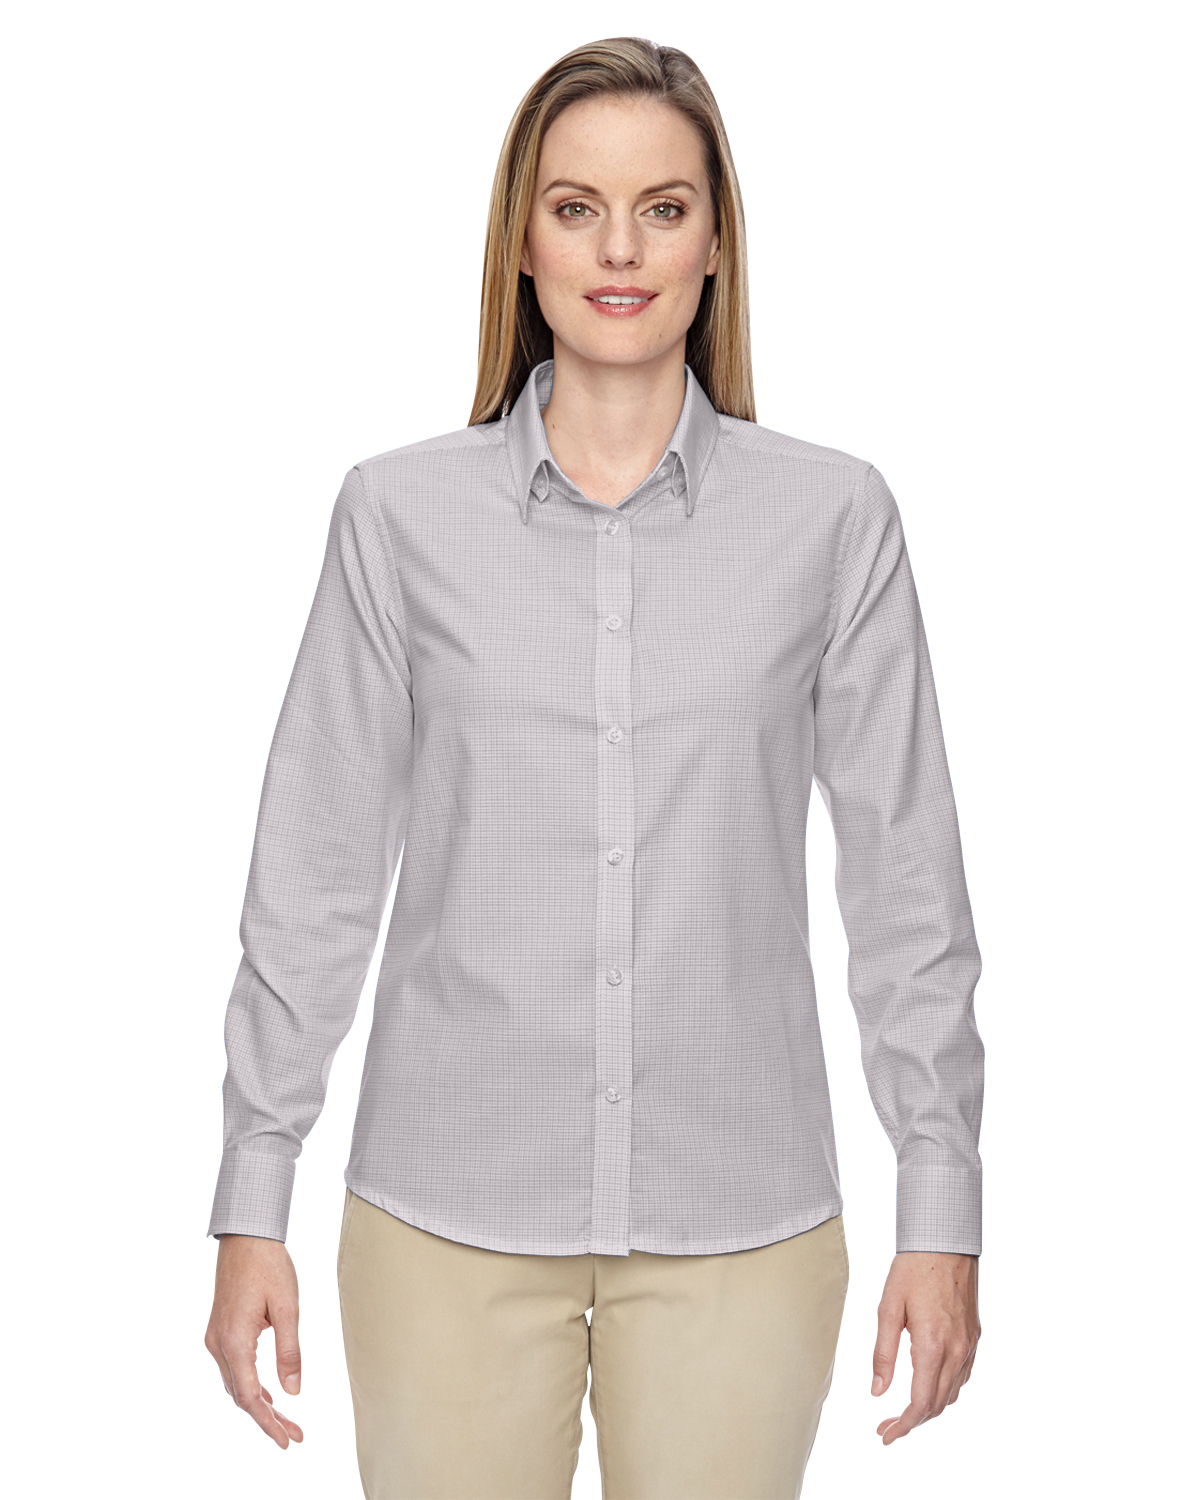 North end 77043 ladies twill checkered shirt shirtmax for Wrinkle resistant dress shirts